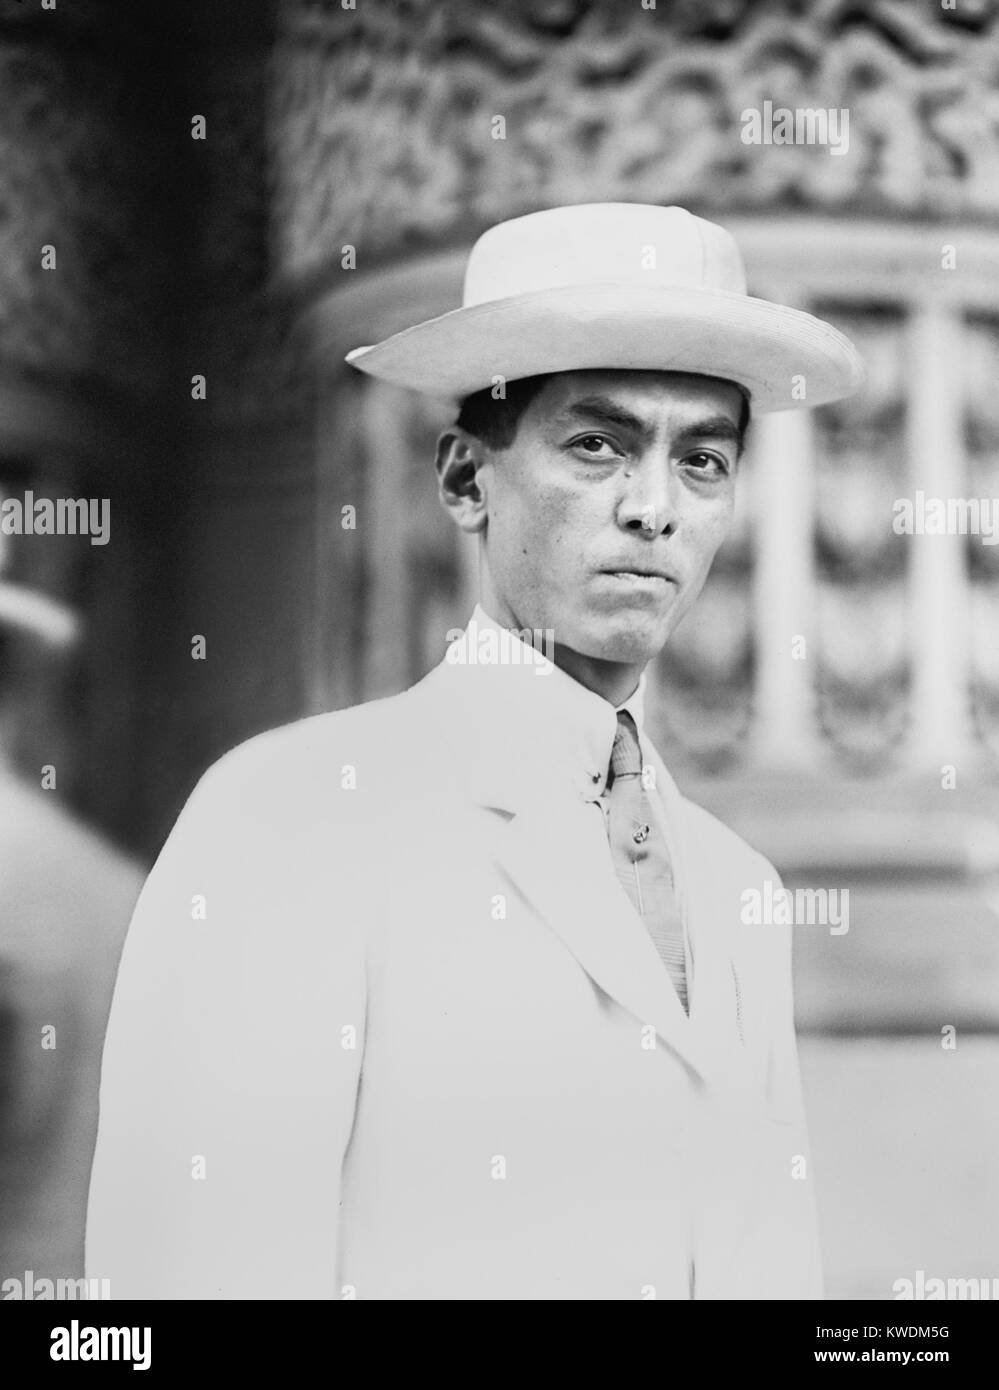 Manuel Quezon in 1912 when he was Resident Commissioner of the Philippines. He was in the US attending the Democratic - Stock Image